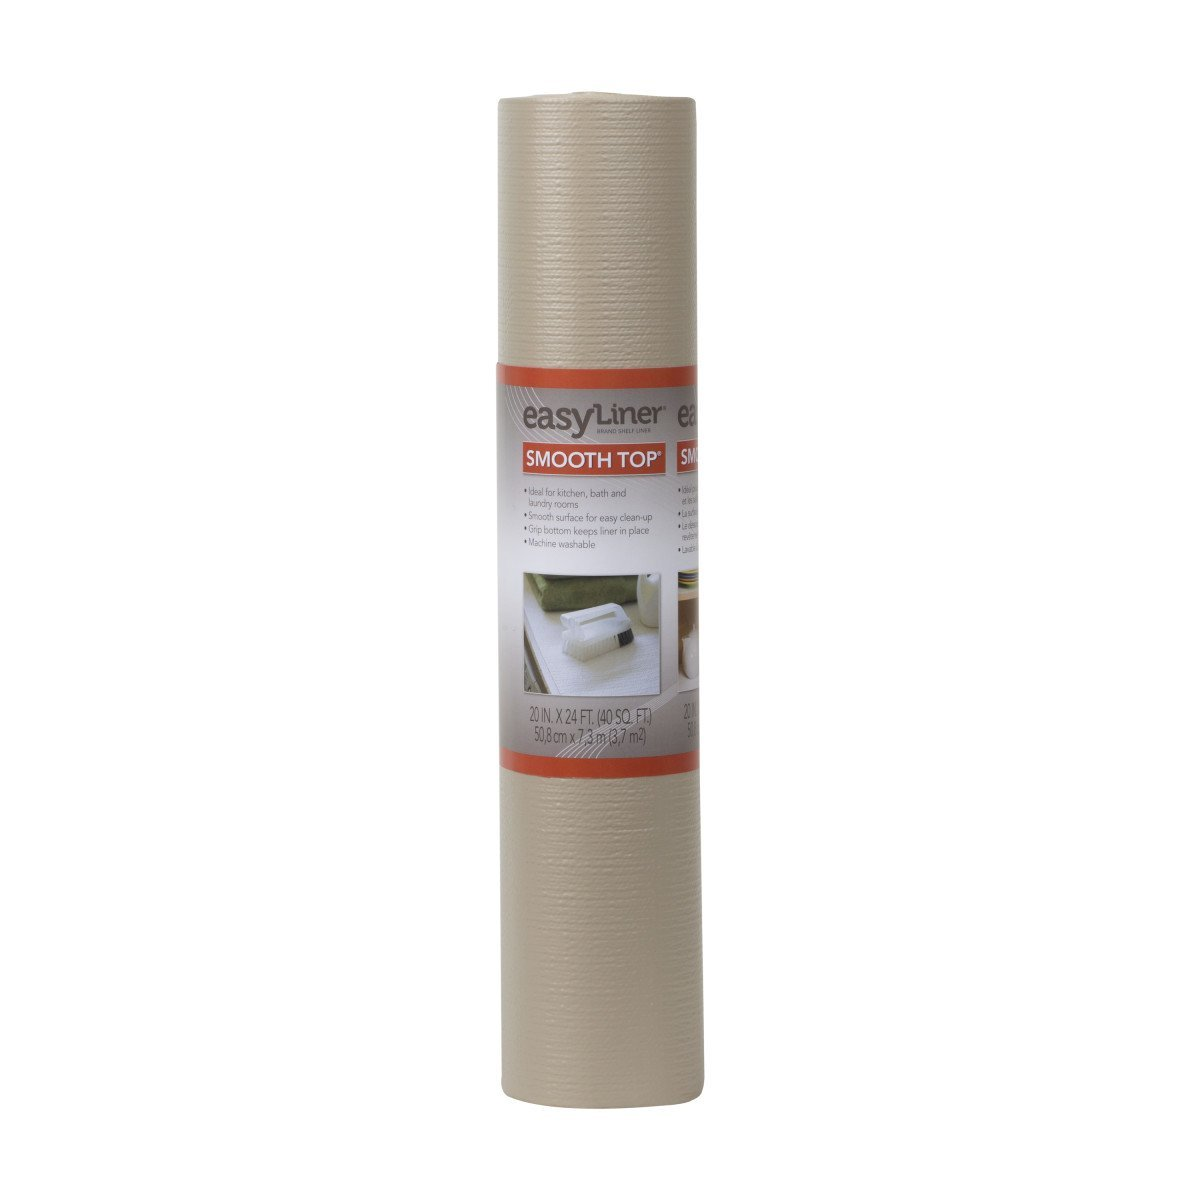 Duck Brand 281873 Smooth Top Easy Liner Non-Adhesive Shelf Liner, 20-Inch x 24-Feet, Taupe